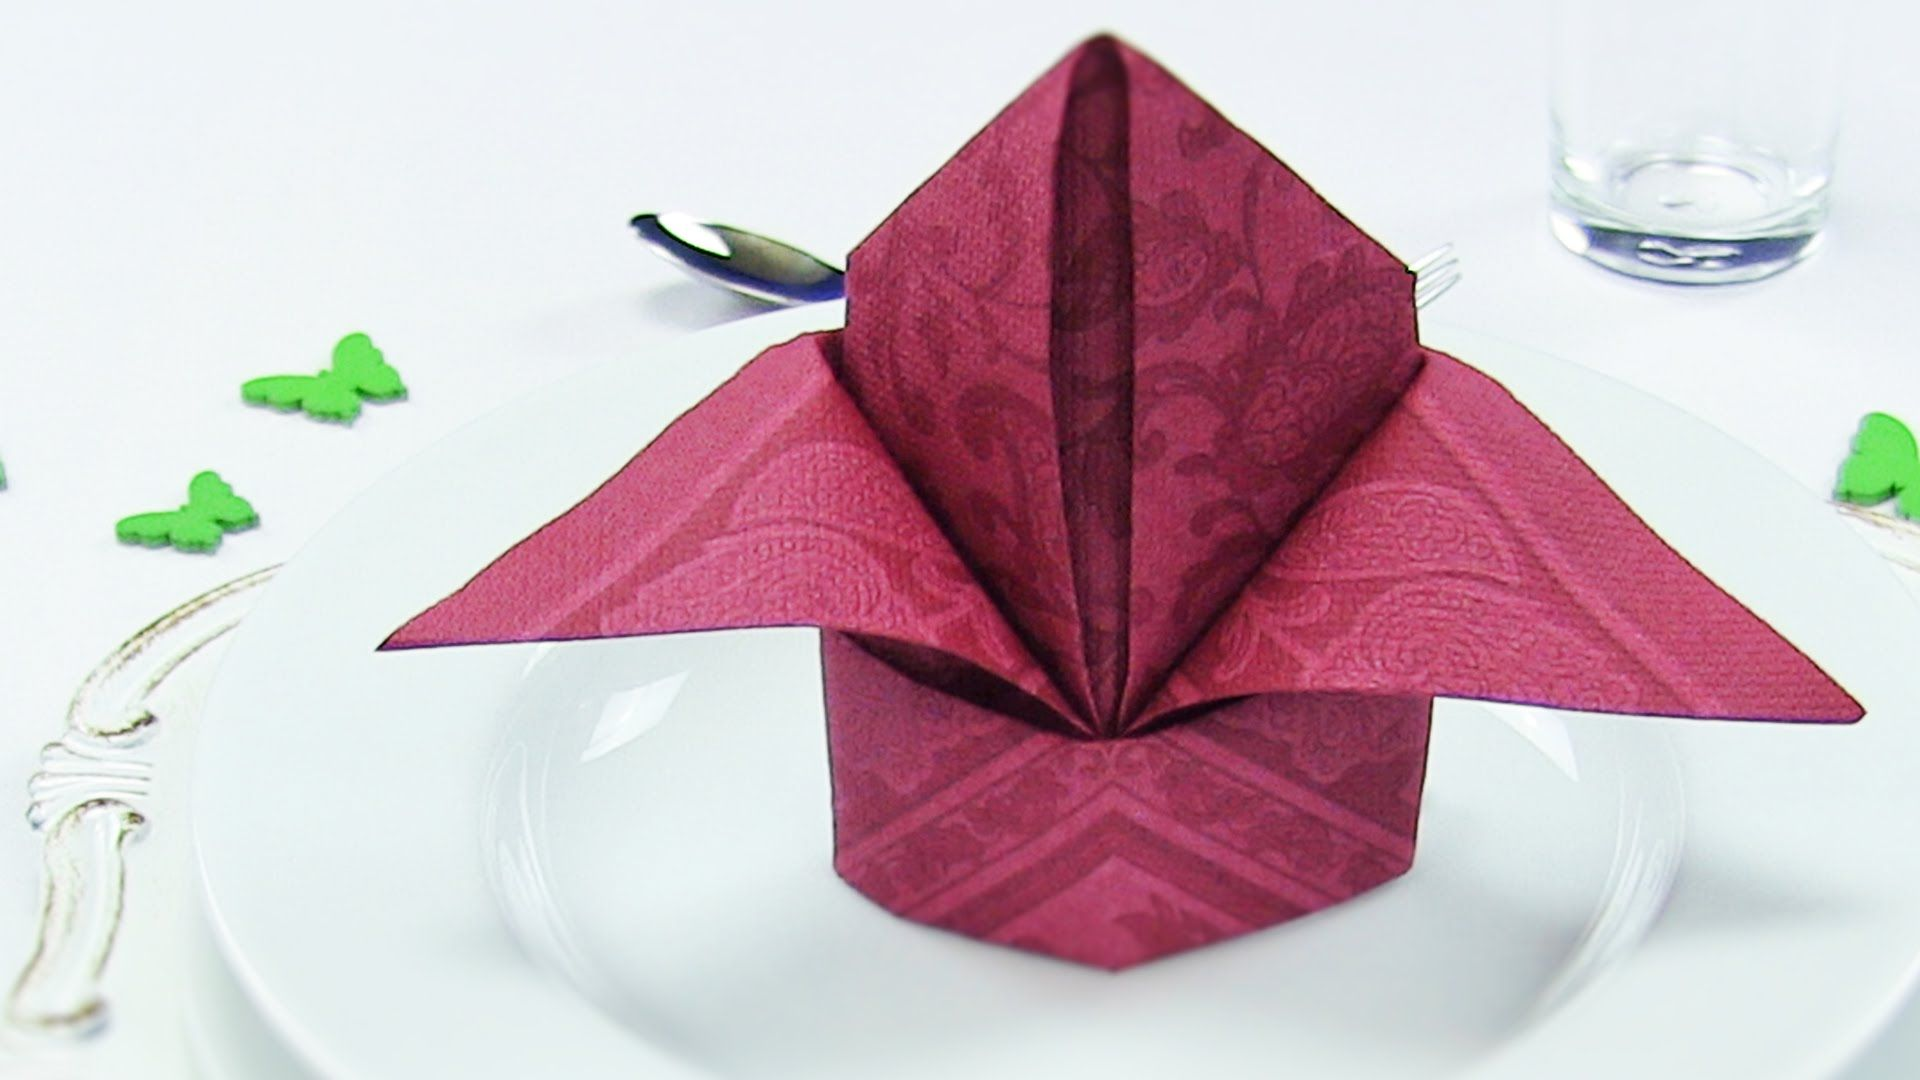 Napkin folding lily or bishops hat easy tutorial napkin table napkin folding bishops hat or lily an easy tutorial for napkin folding beginners youll learn how to fold a lily or a bishops hat out of paper mightylinksfo